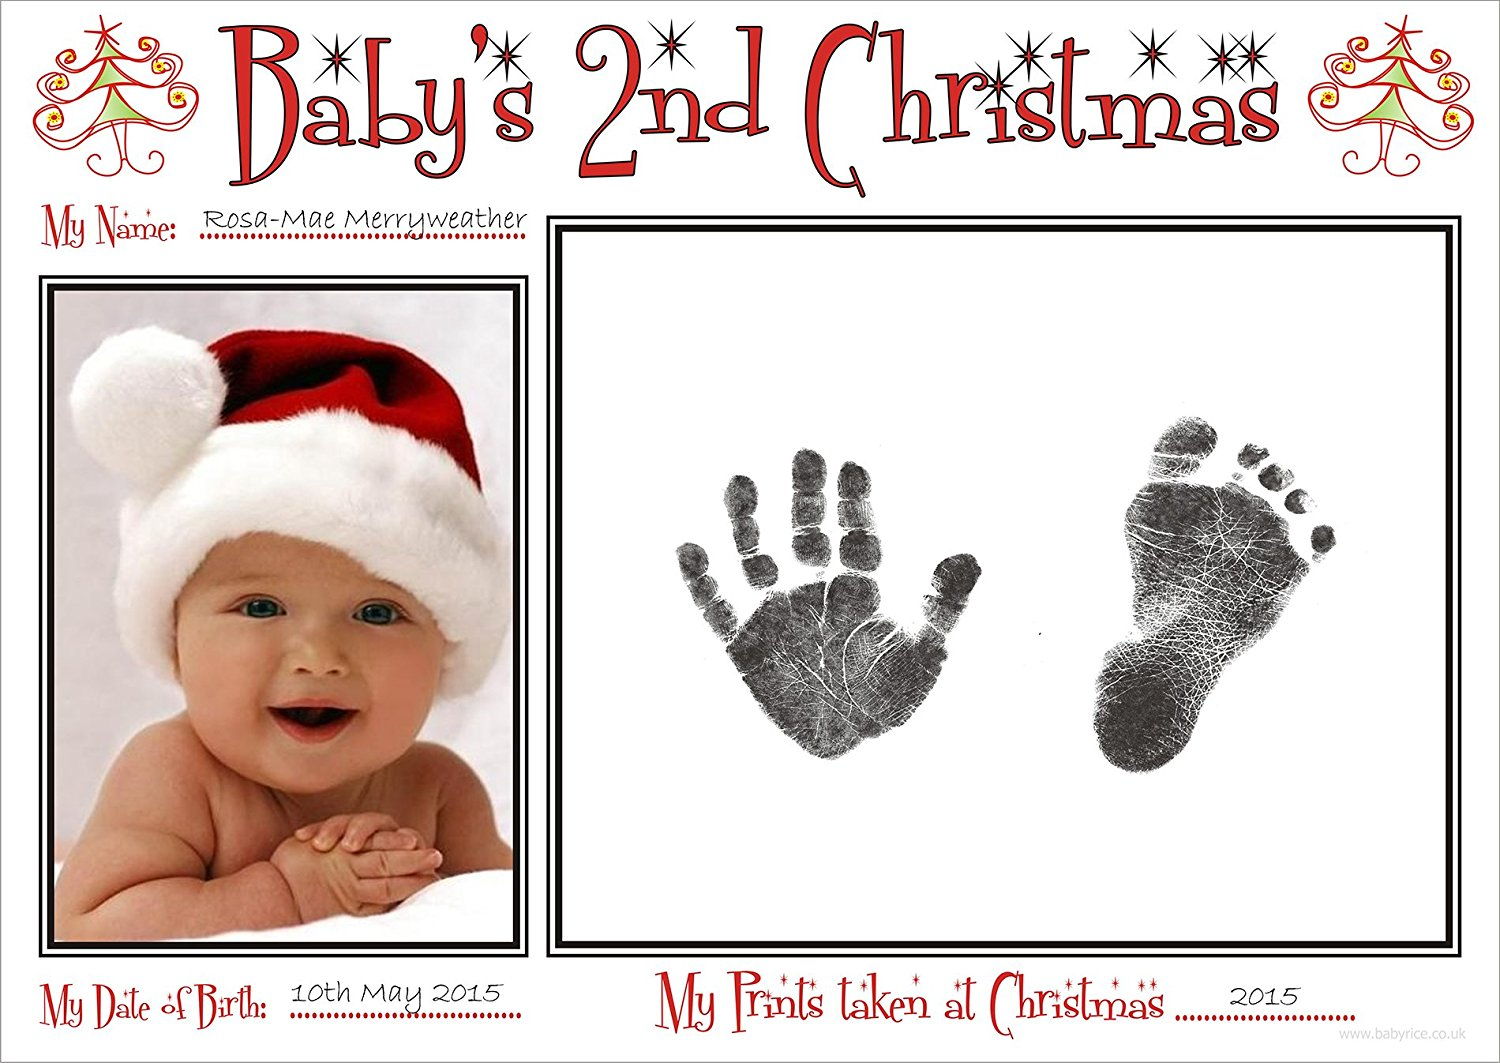 BabyRice New Baby's 2nd Christmas Handprint & Footprint Kit / Boy Girl Unisex Babys Prints on 2nd Xmas